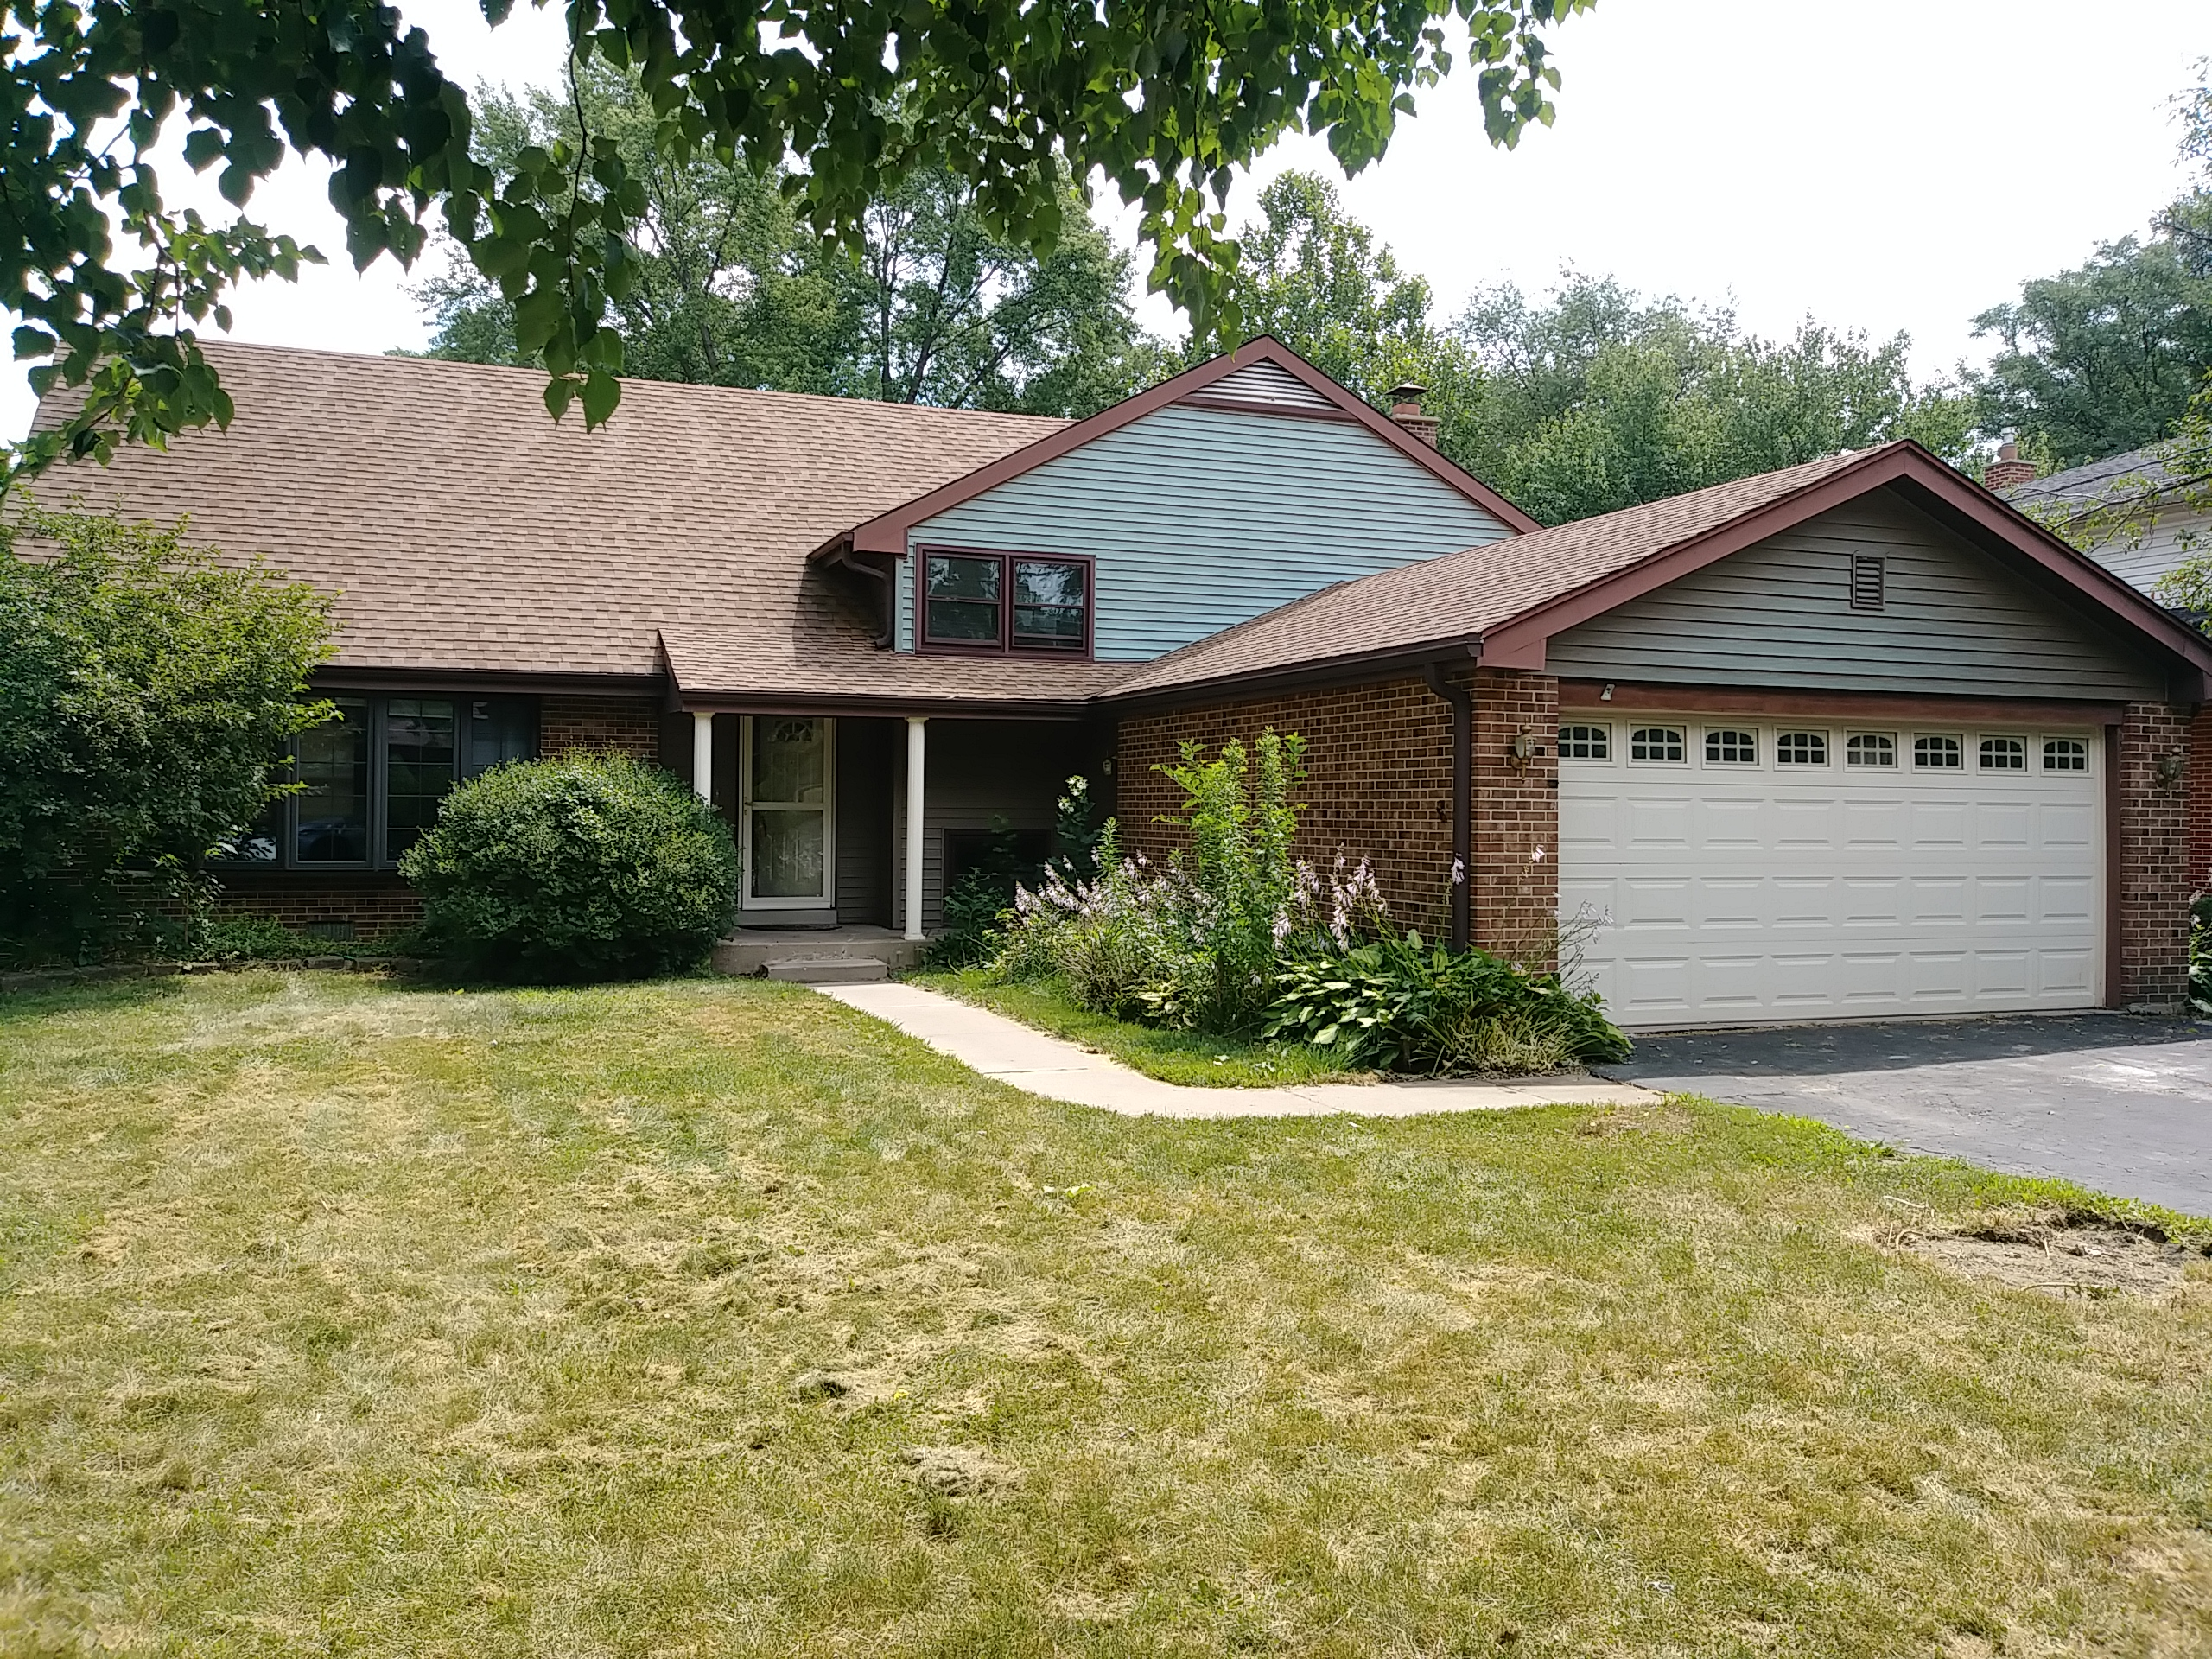 Photo of 17470 91st Pl N, Maple Grove, MN, 55311